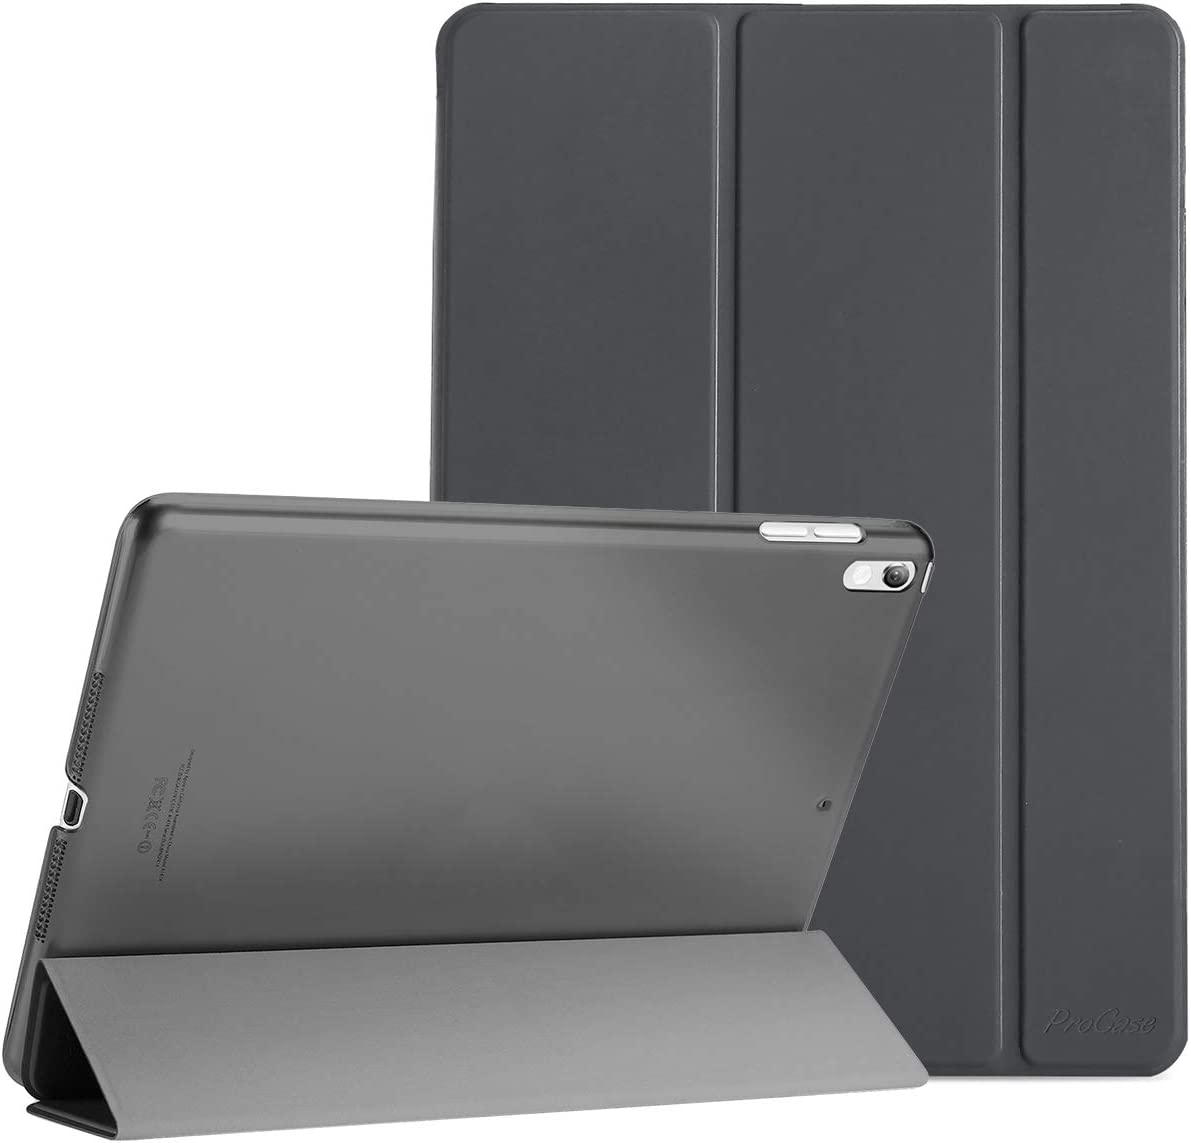 "ProCase iPad Air (3rd Gen) 10.5"" 2019 / iPad Pro 10.5"" 2017 Case, Ultra Slim Lightweight Stand Smart Case Shell with Translucent Frosted Back Cover for Apple iPad Air (3rd Gen) 10.5"" 2019 –Space Gray"